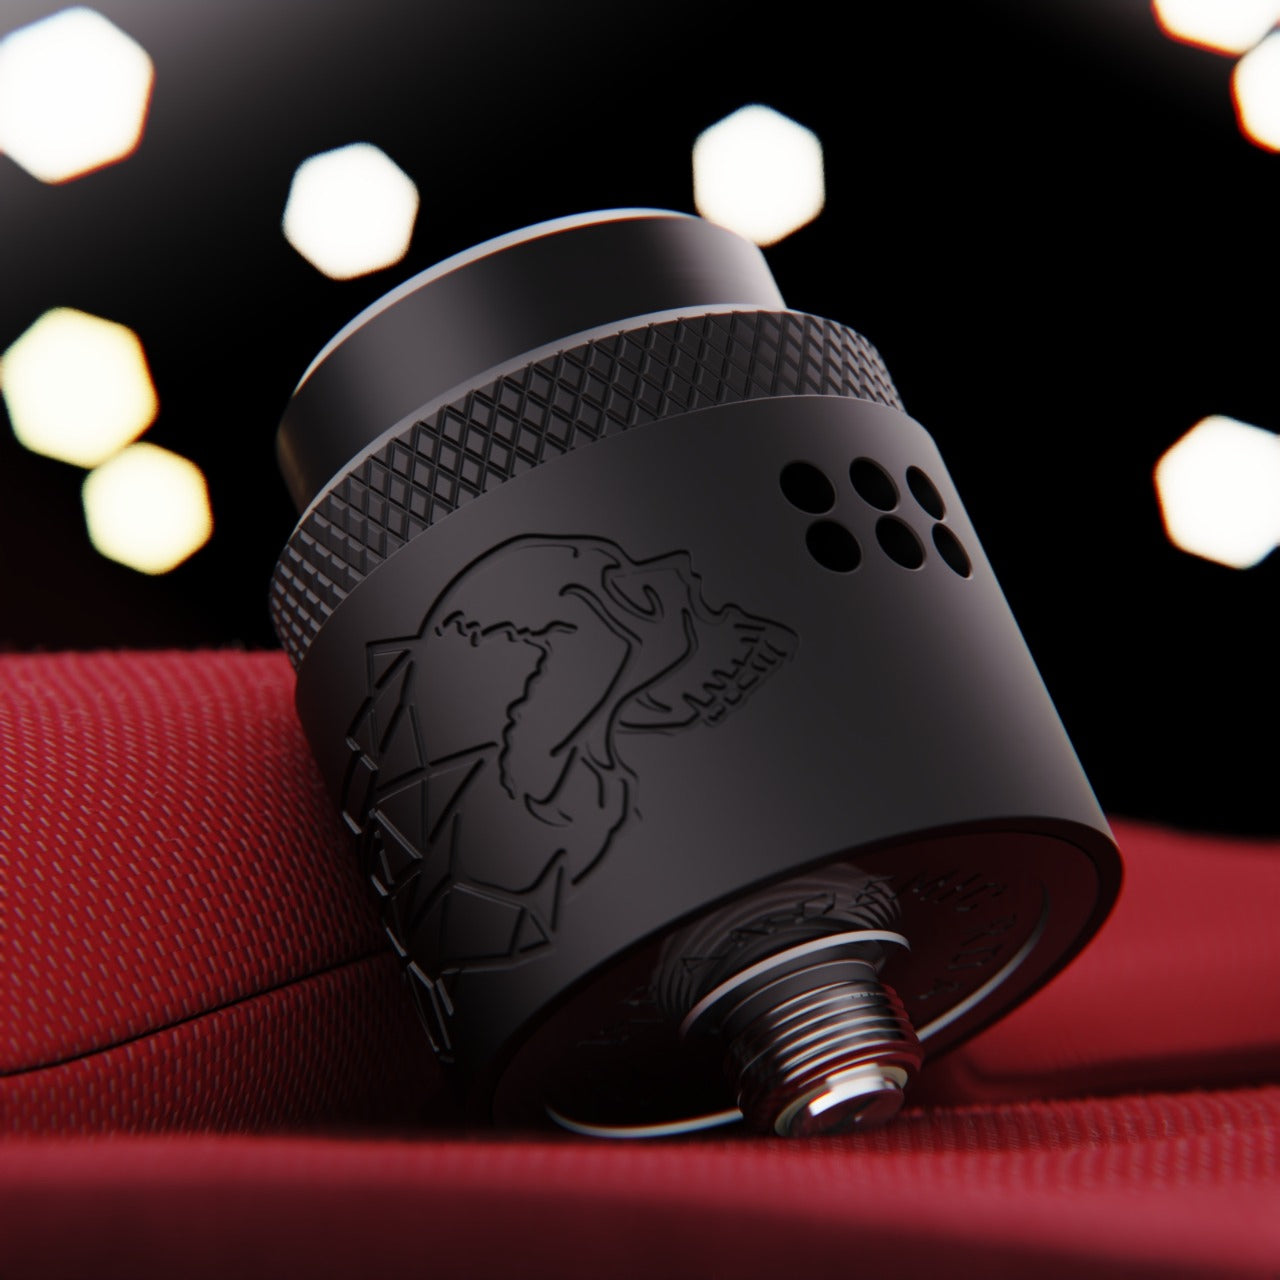 Unicorn Inc, Pandemic RDA